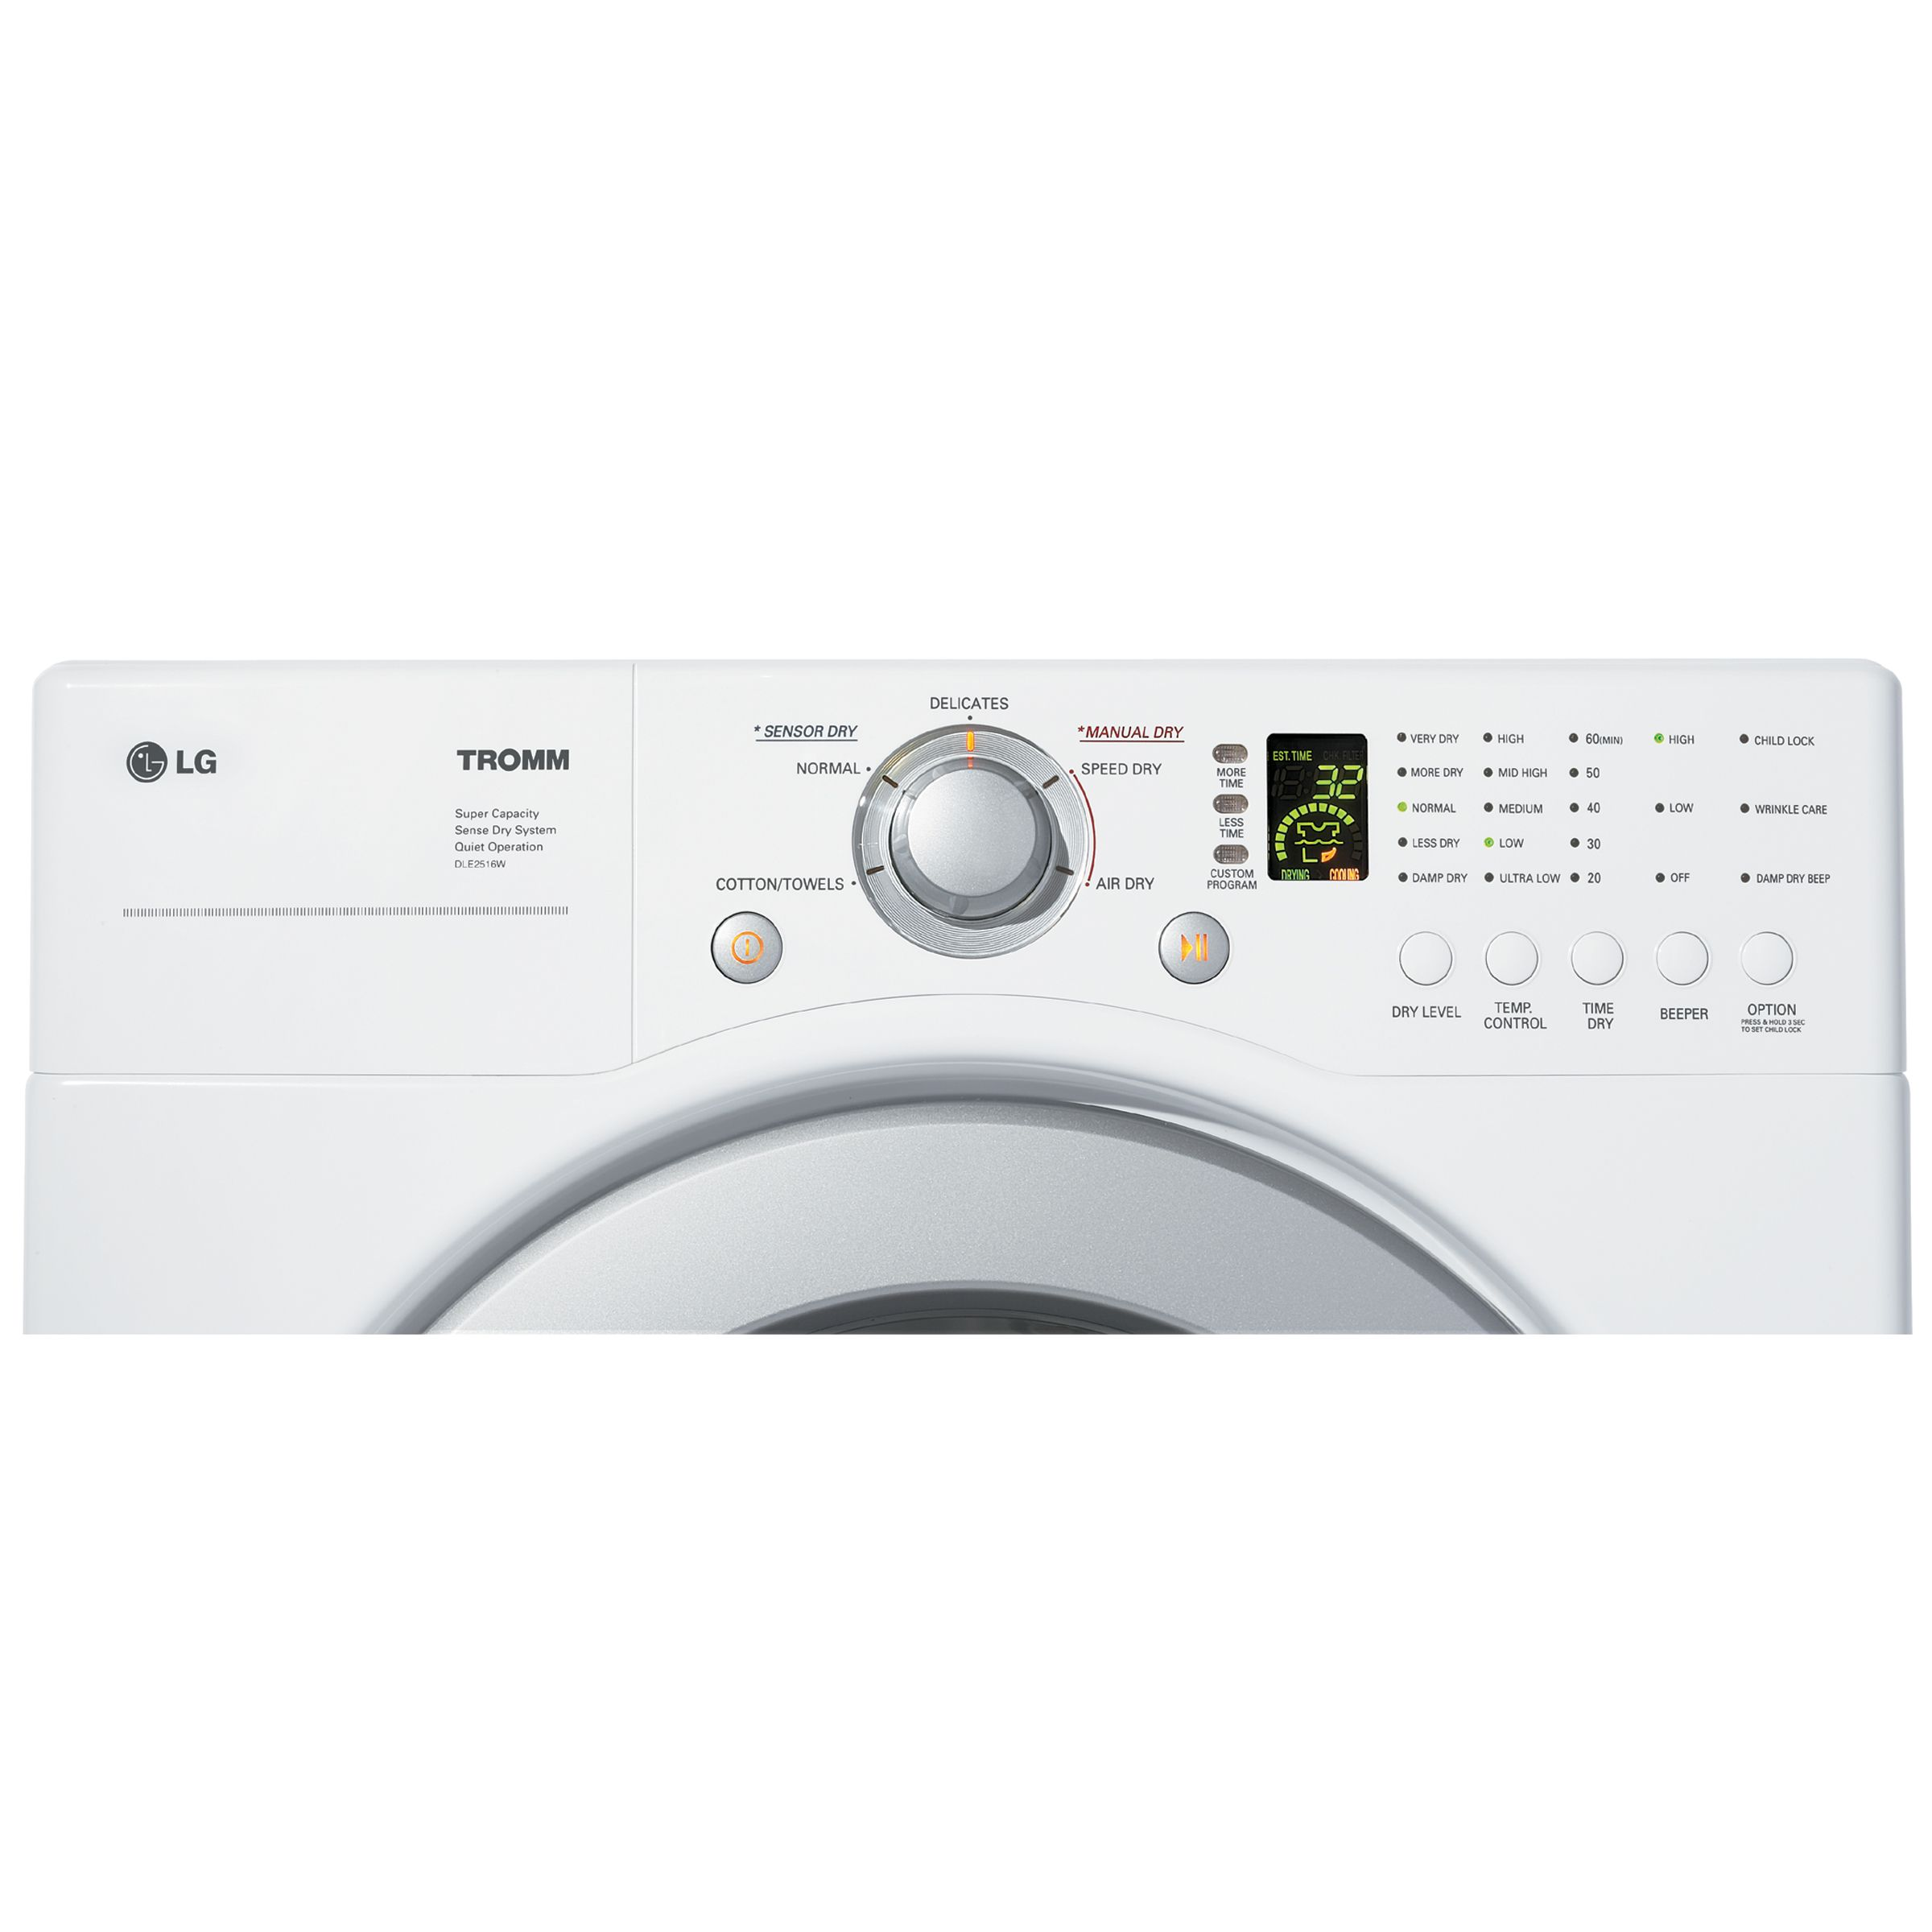 LG 3.6 cu. ft. Capacity Front Load Washer w/ Direct Drive Motor - WM2016C